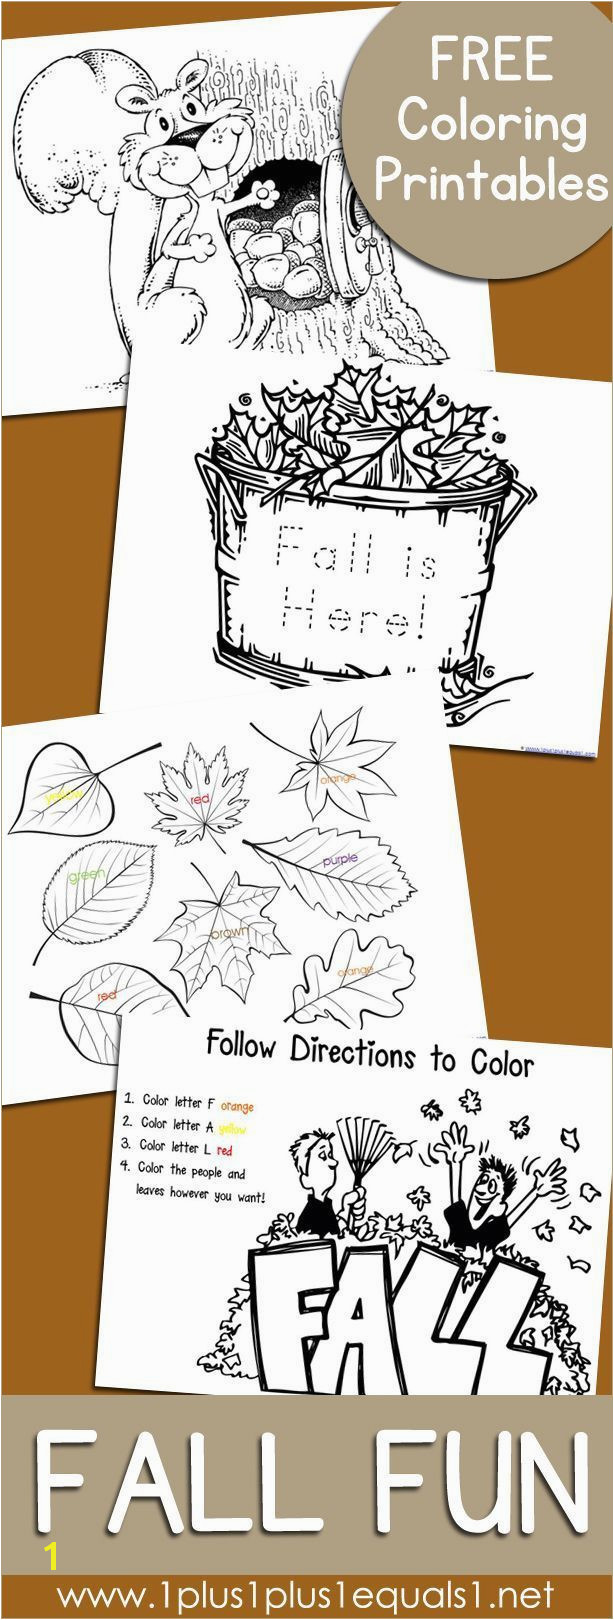 Coloring Pages for Adults Free to Download & Print 114 Best Images About School Kids Stuff On Pinterest